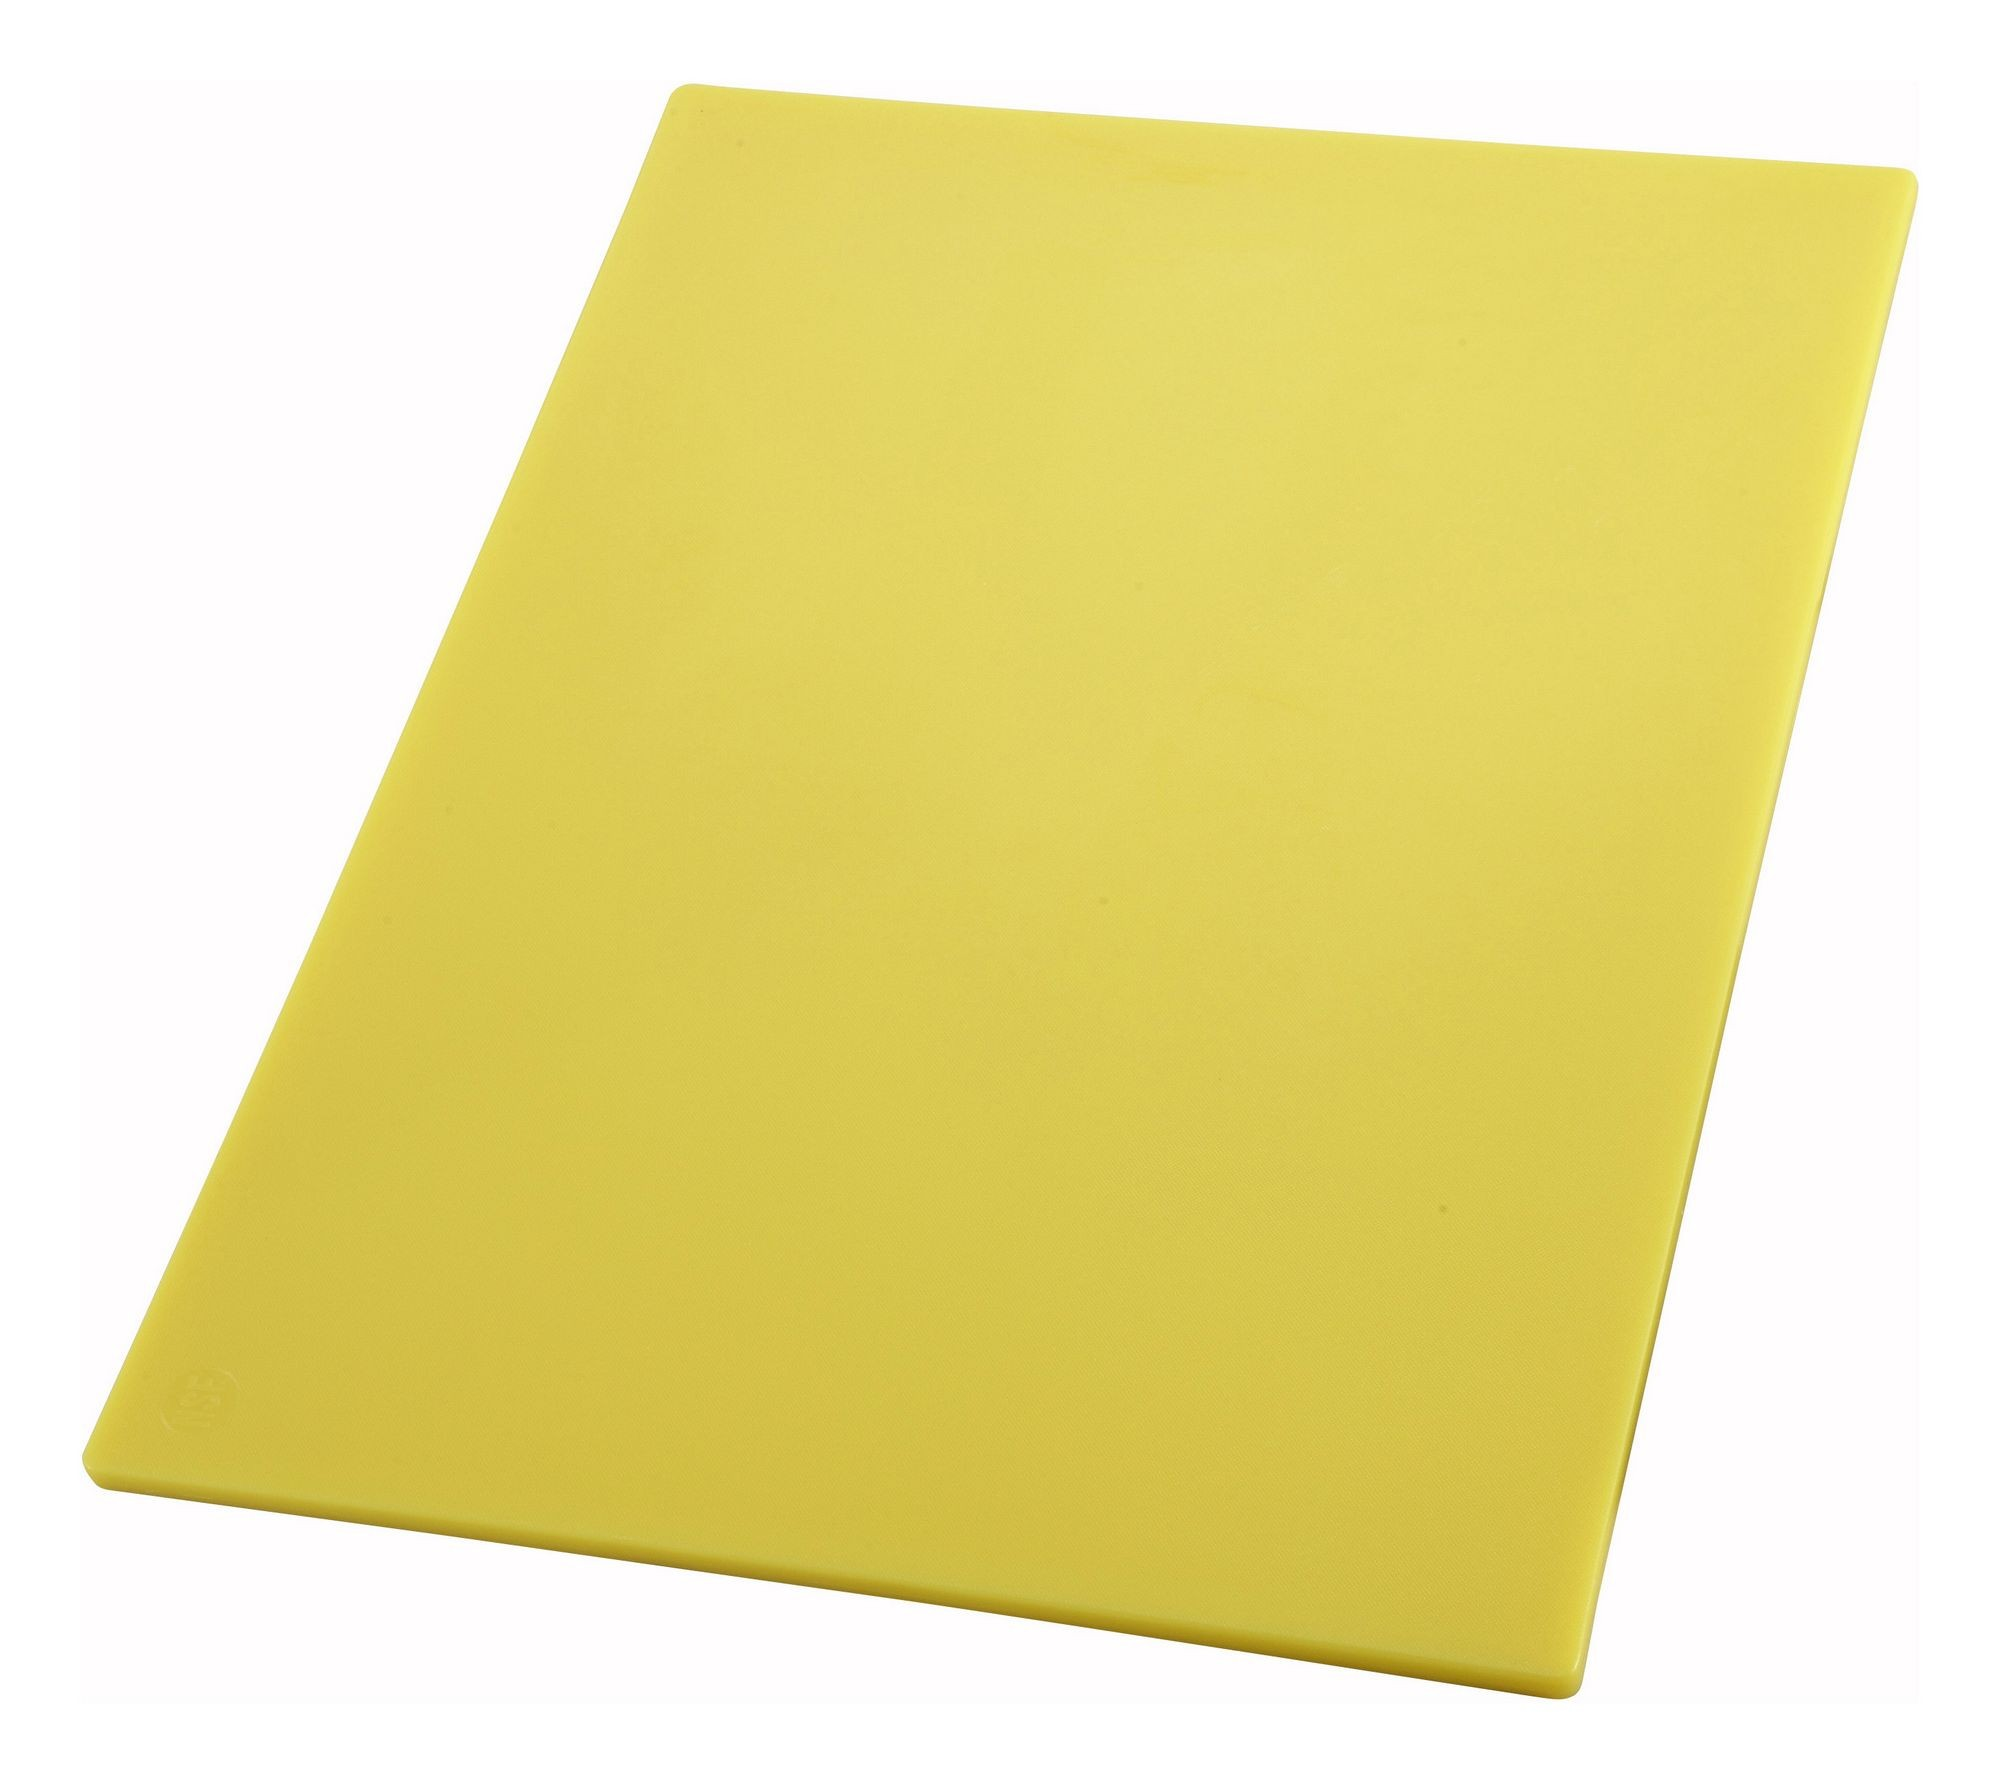 12x18x1/2 Cutting Board Yellow (Raw Poultry & Chicken Board)